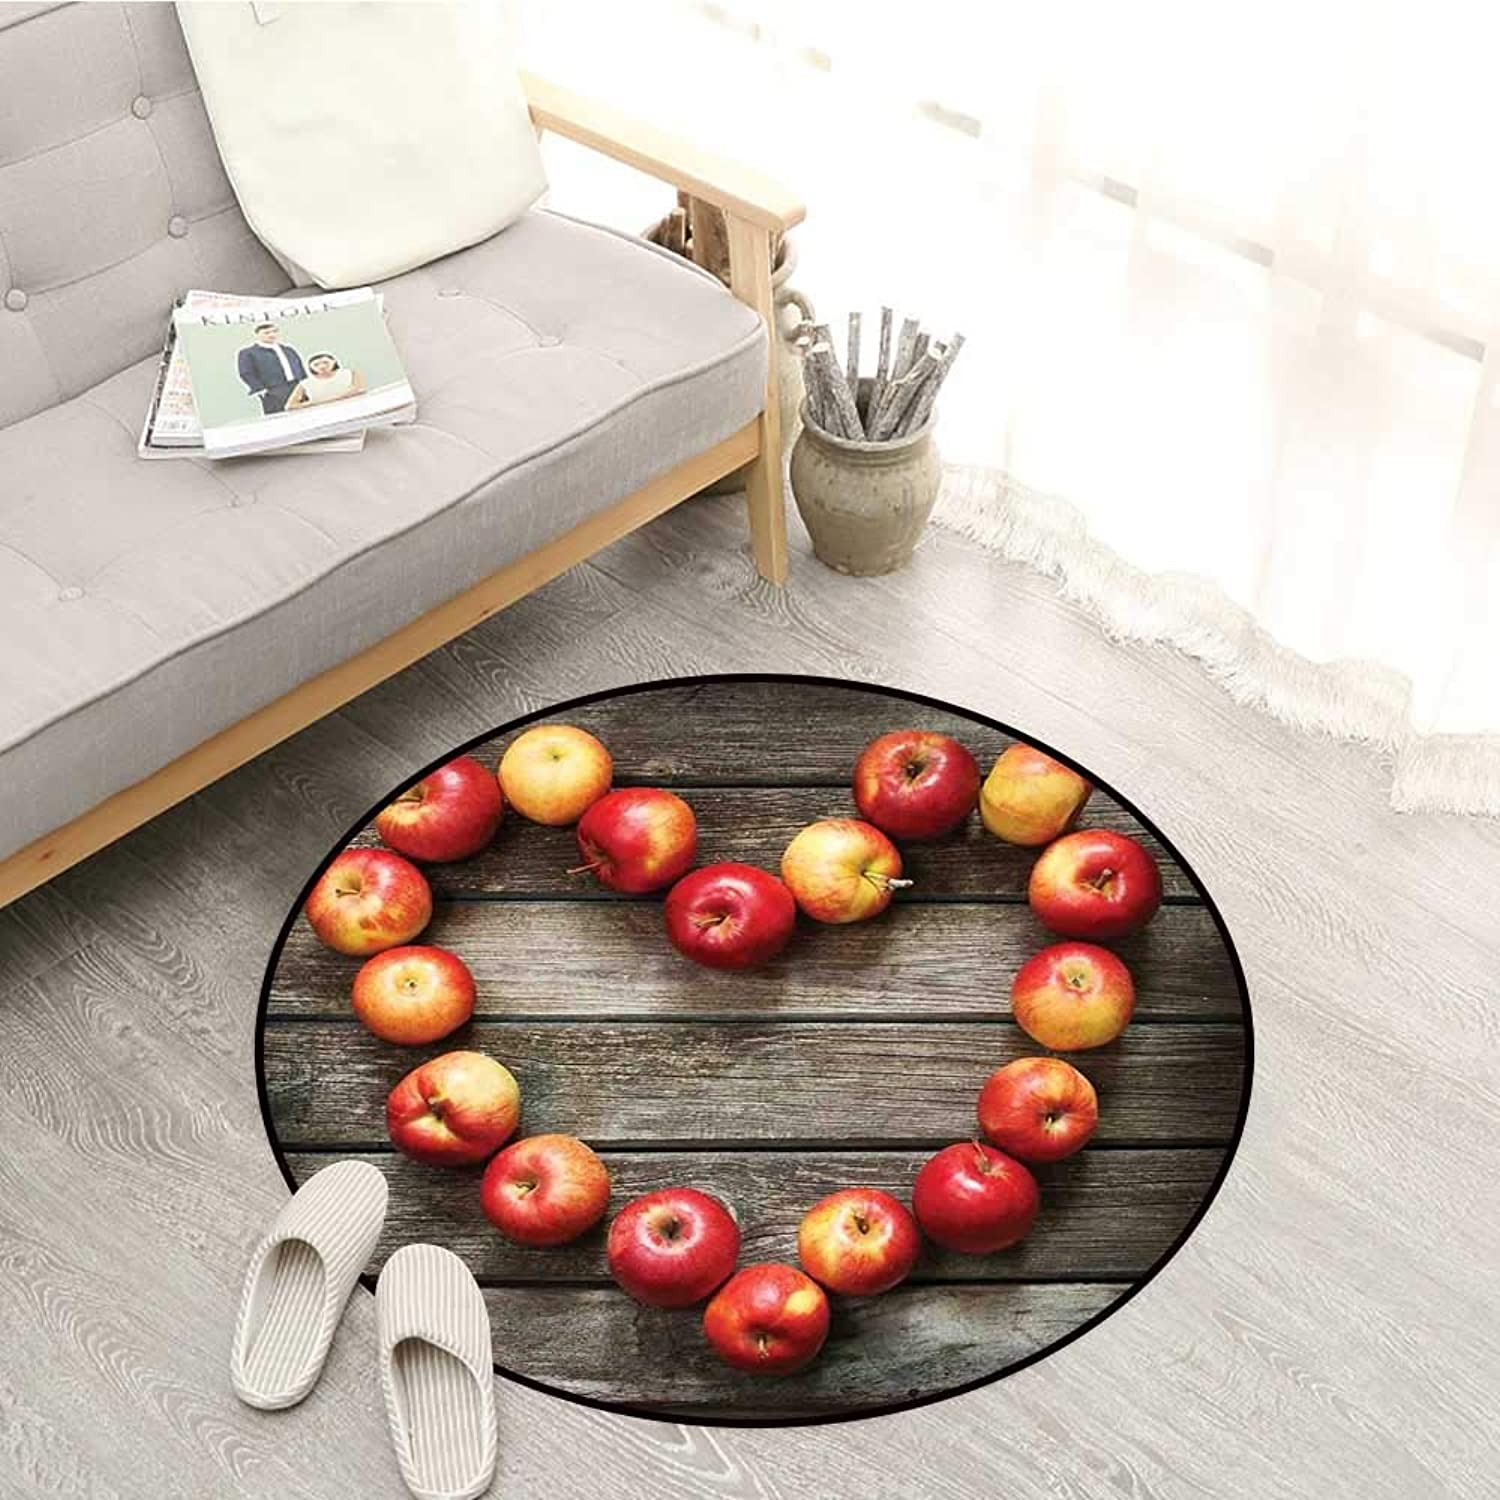 Modern Non-Slip Rugs Rustic Style Home Cafe Decor Wooden Kitchen Surface Fresh Apples Image Art Veggies Fruit Sofa Coffee Table Mat 4'11  Brown Red